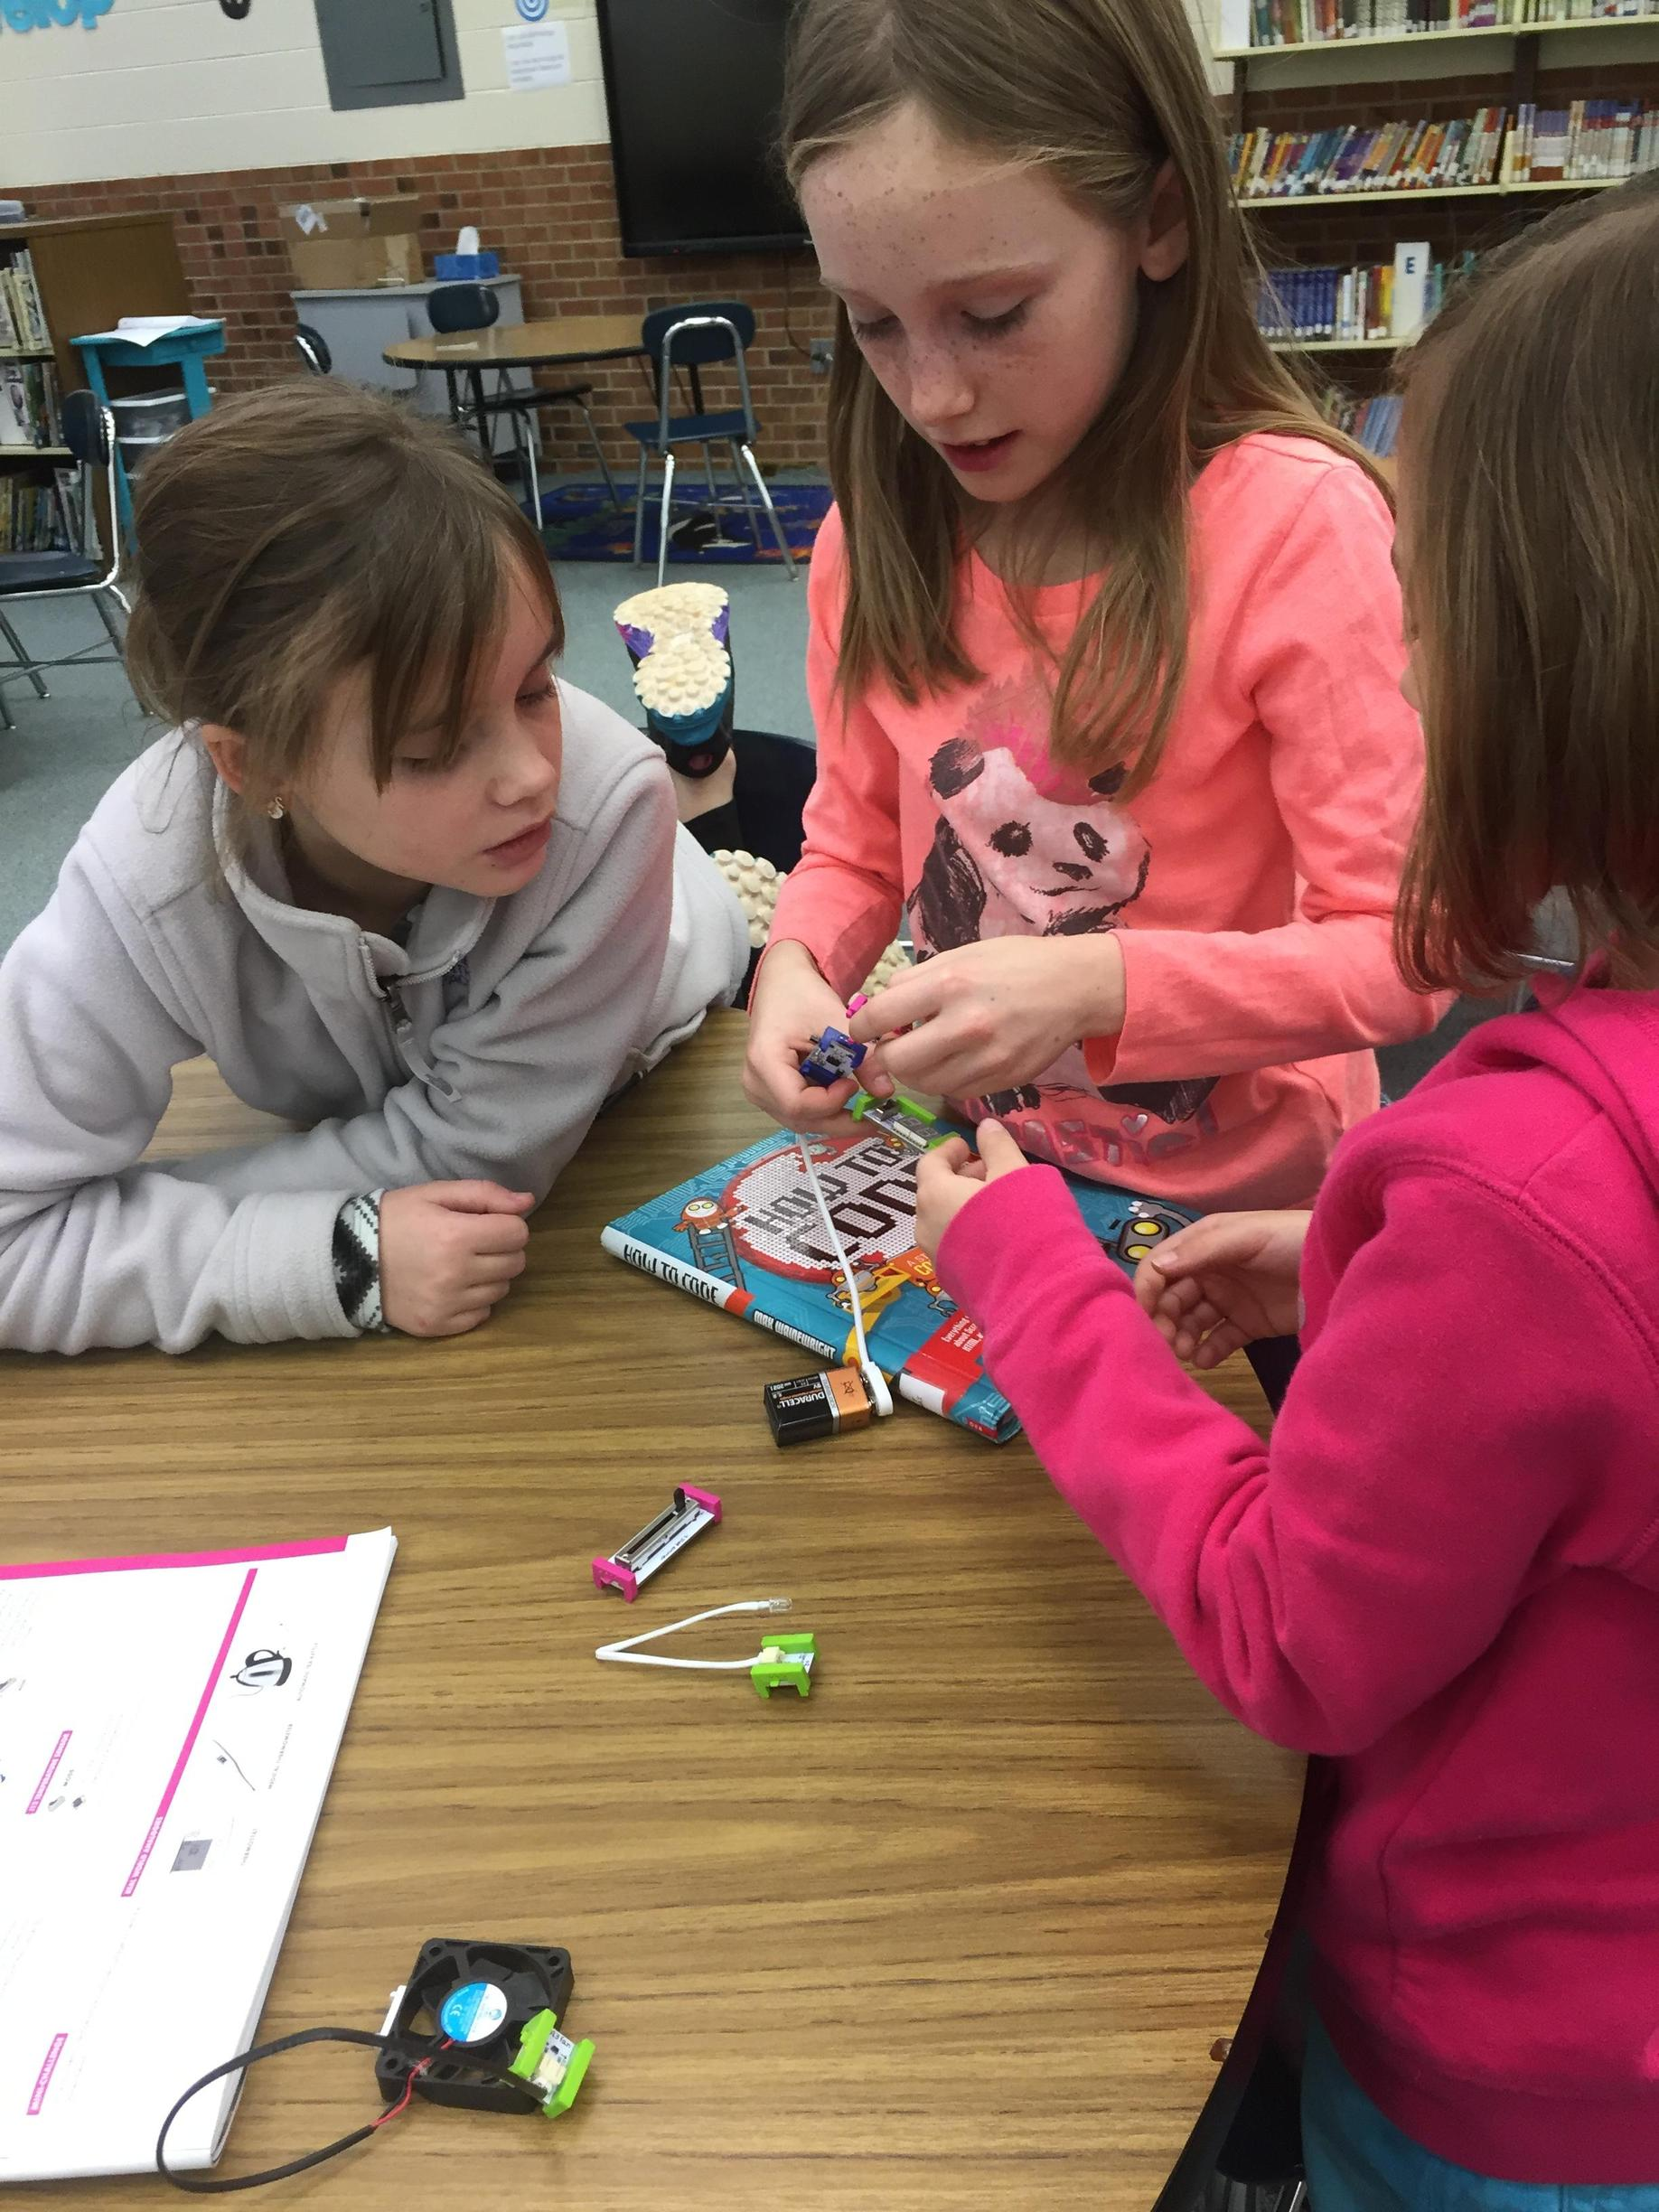 Coding with littlebits